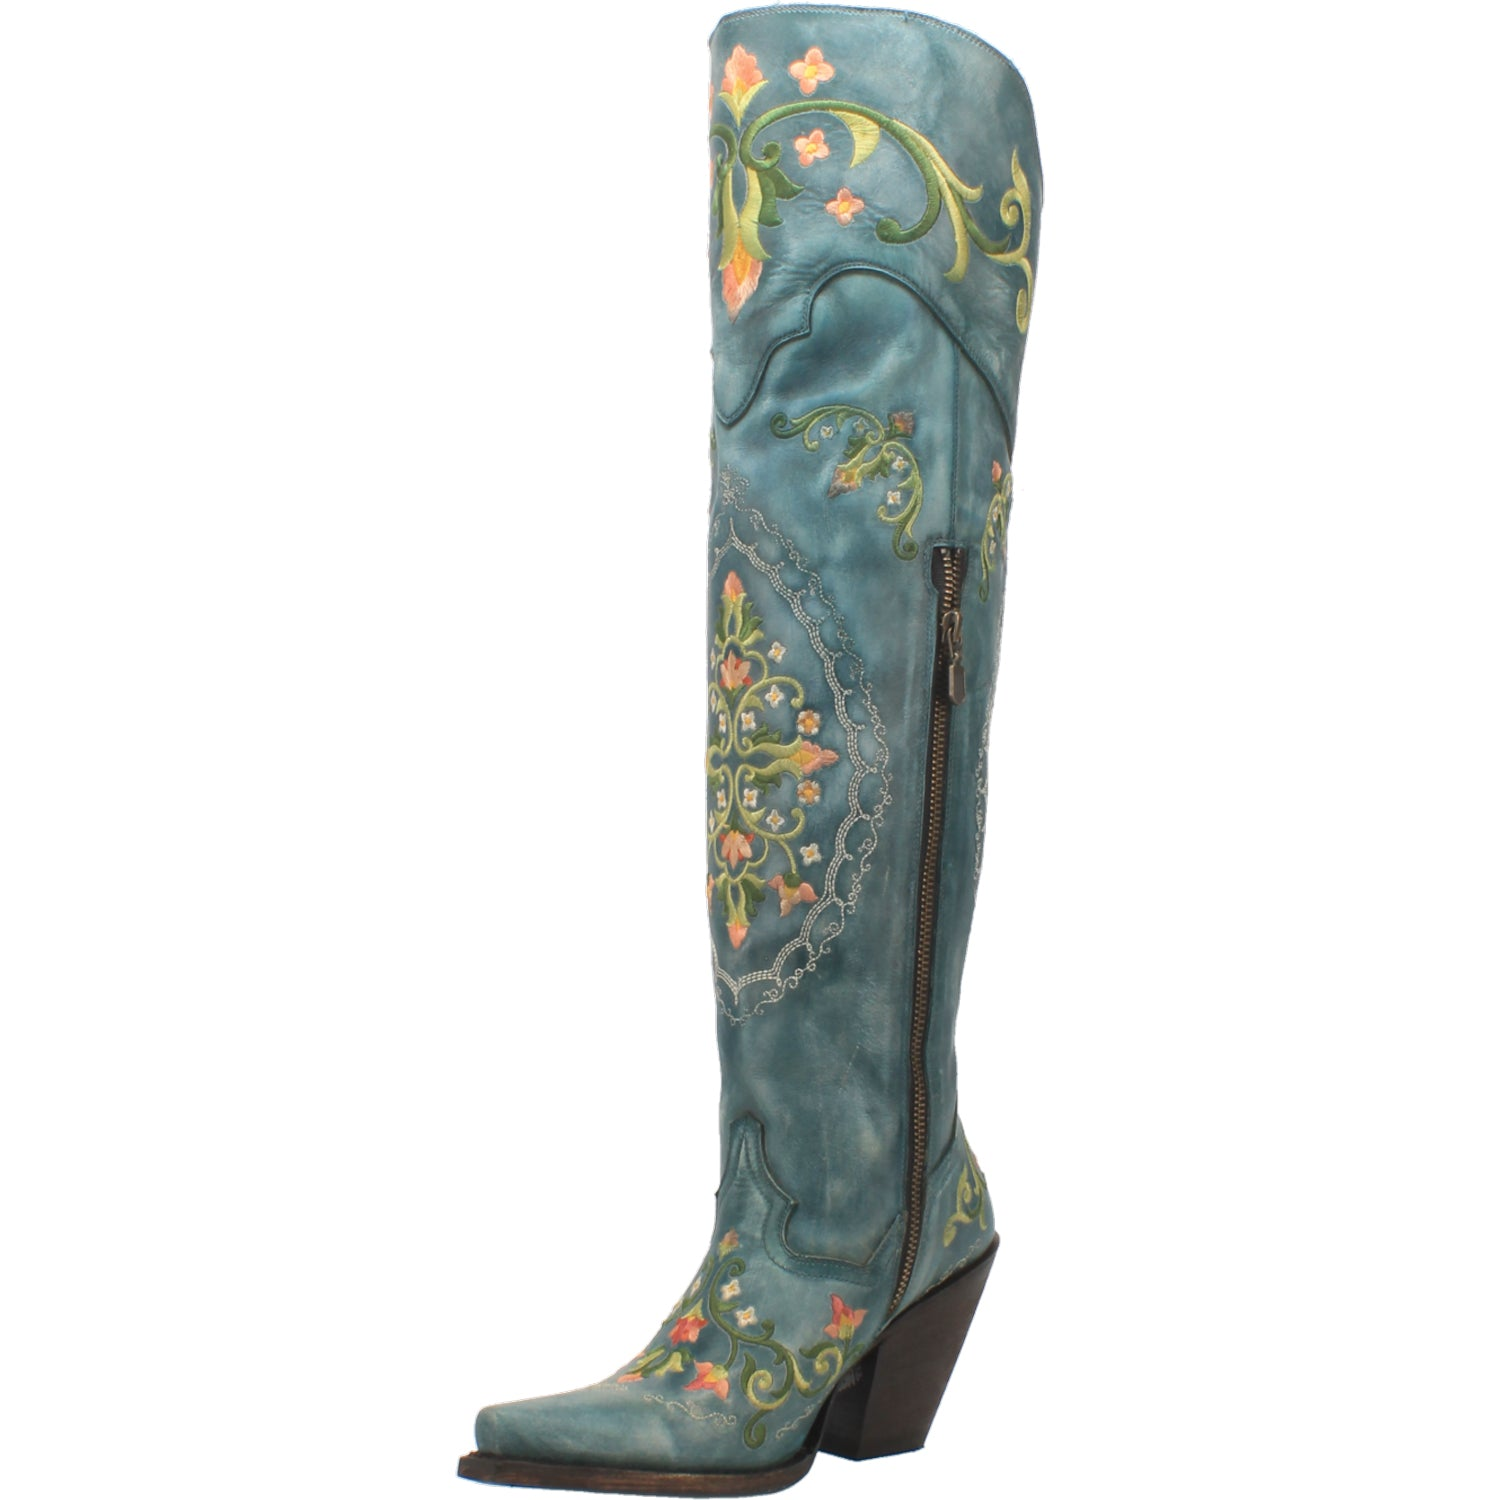 FLOWER CHILD LEATHER BOOT 15267551313962